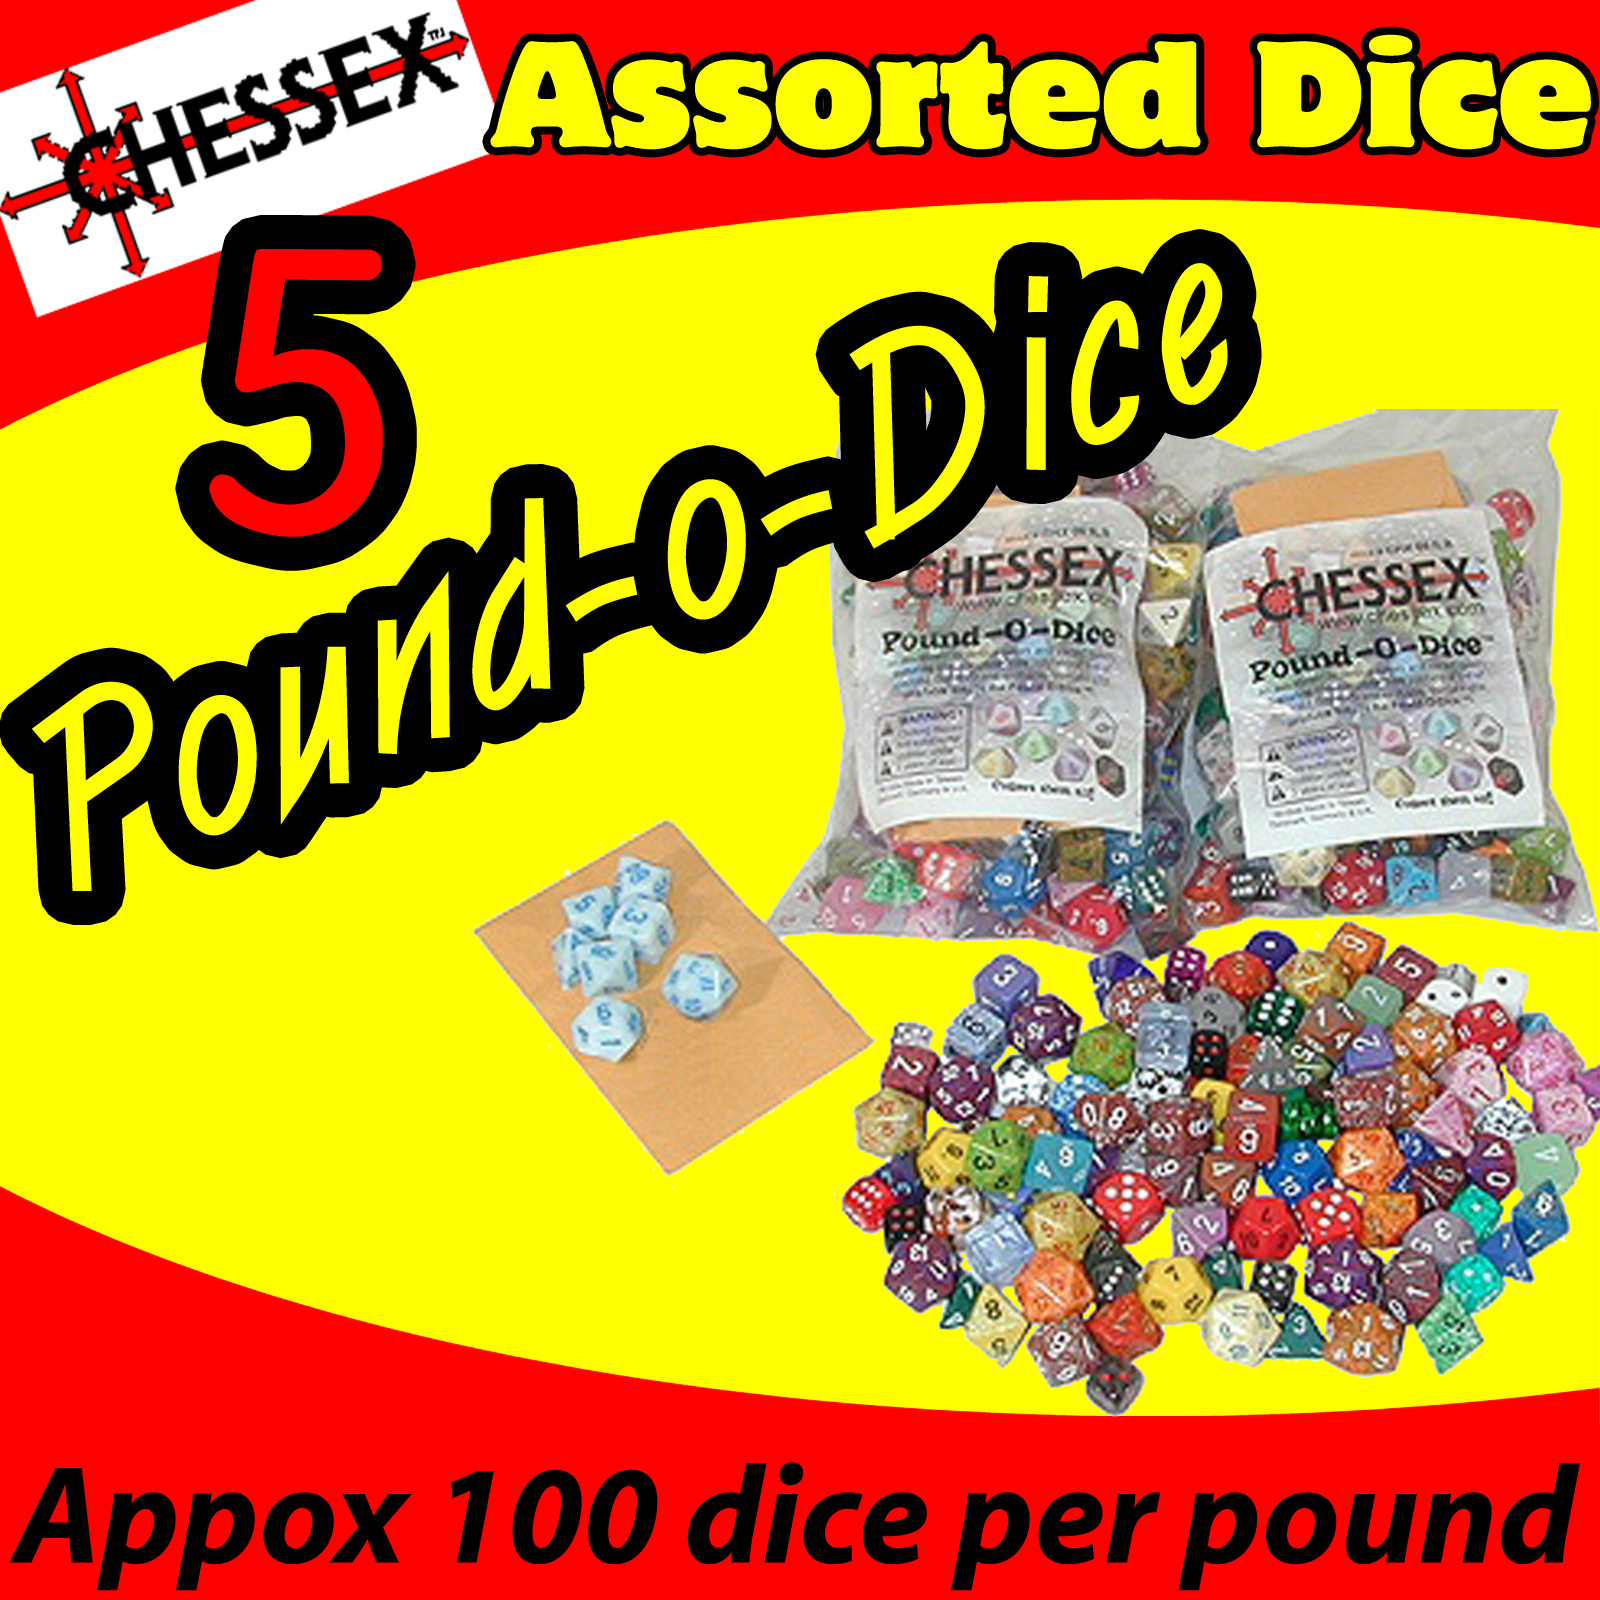 Chessex Pound O Dice (5 lbs) USA SHIPPING